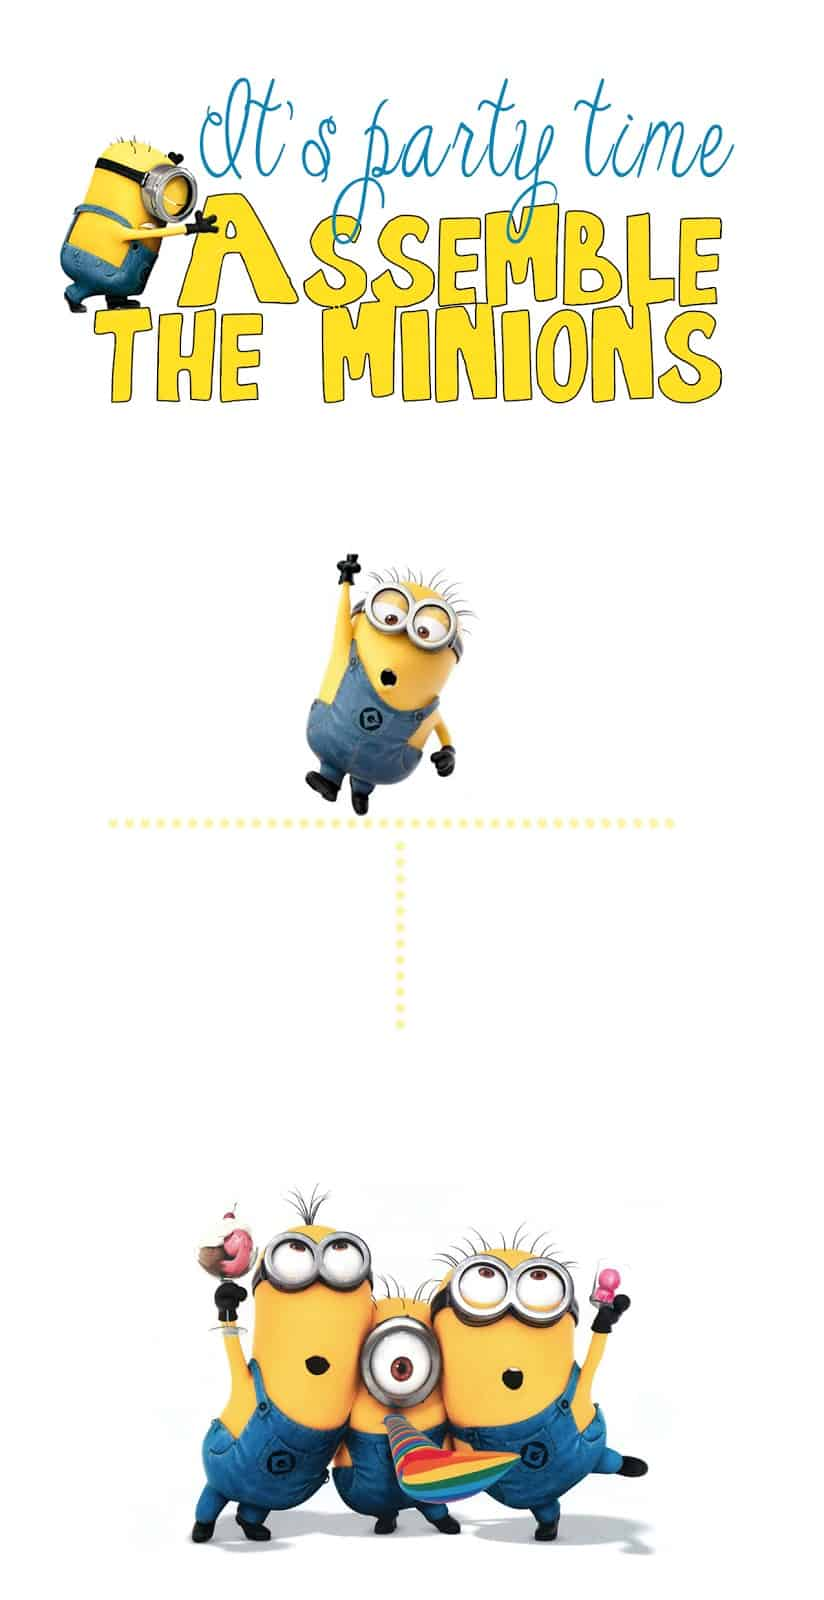 graphic relating to Minion Printable Cutouts named 30 MINION Tips! Acquire the Minions!! - Emma Owl